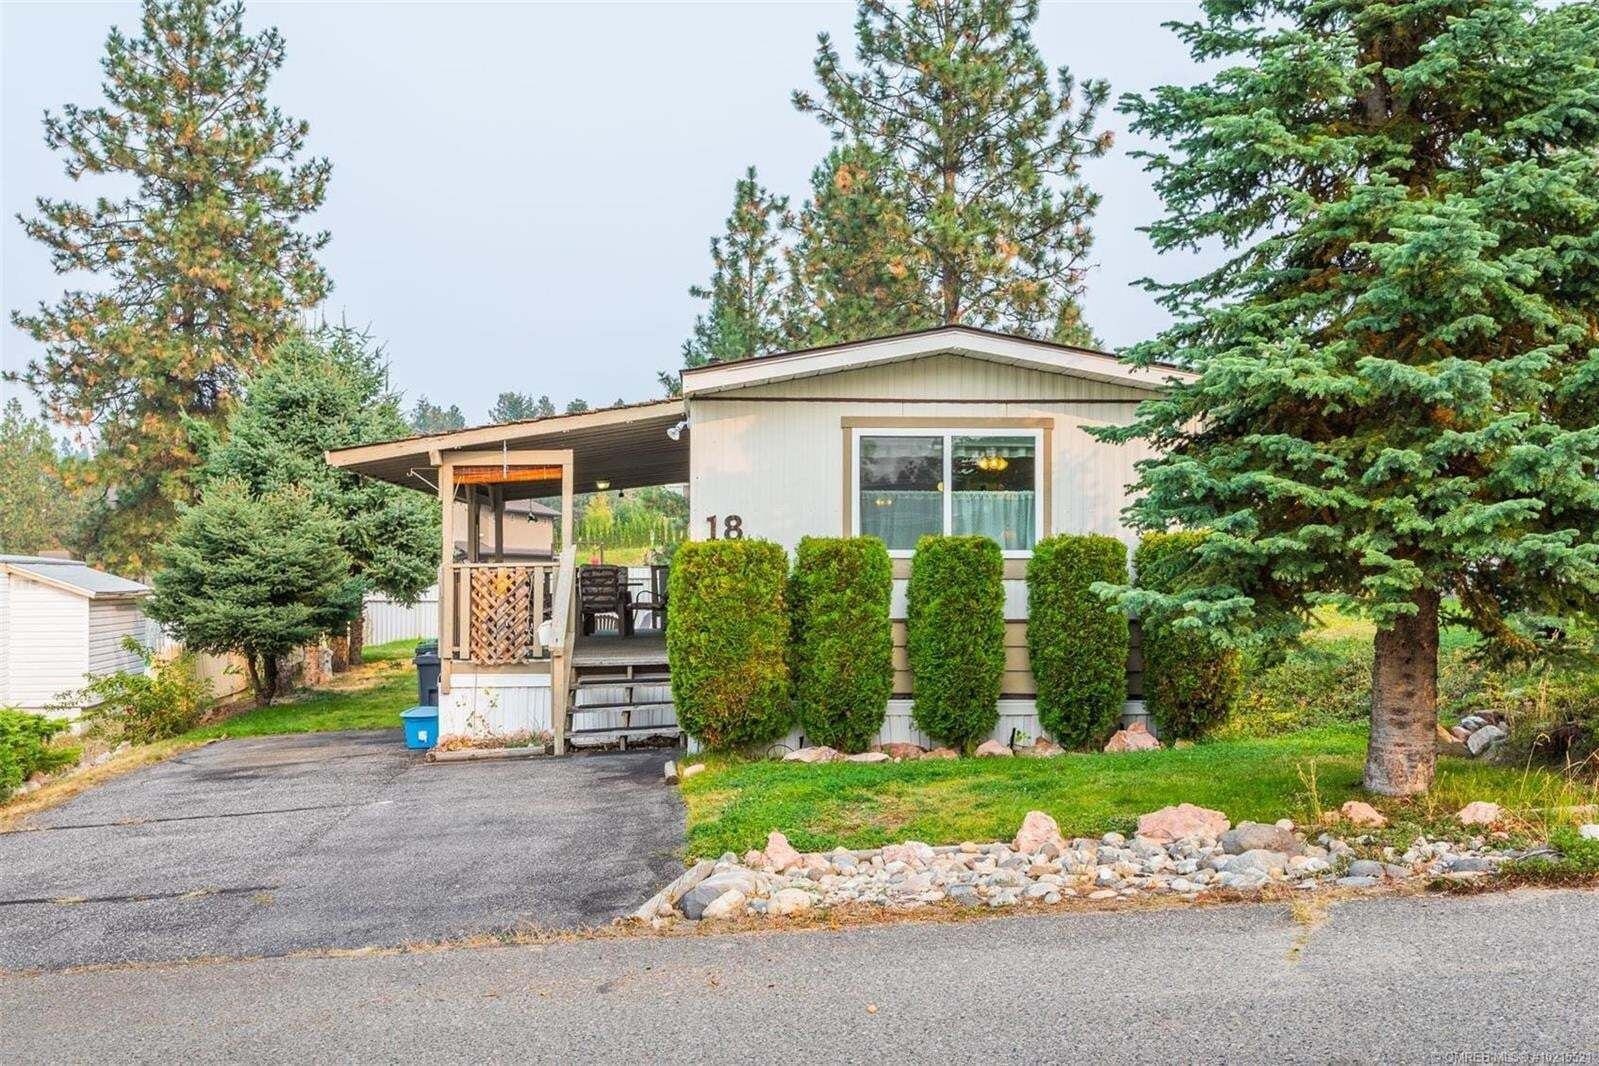 Residential property for sale at 3535 Mcculloch Rd Kelowna British Columbia - MLS: 10215521